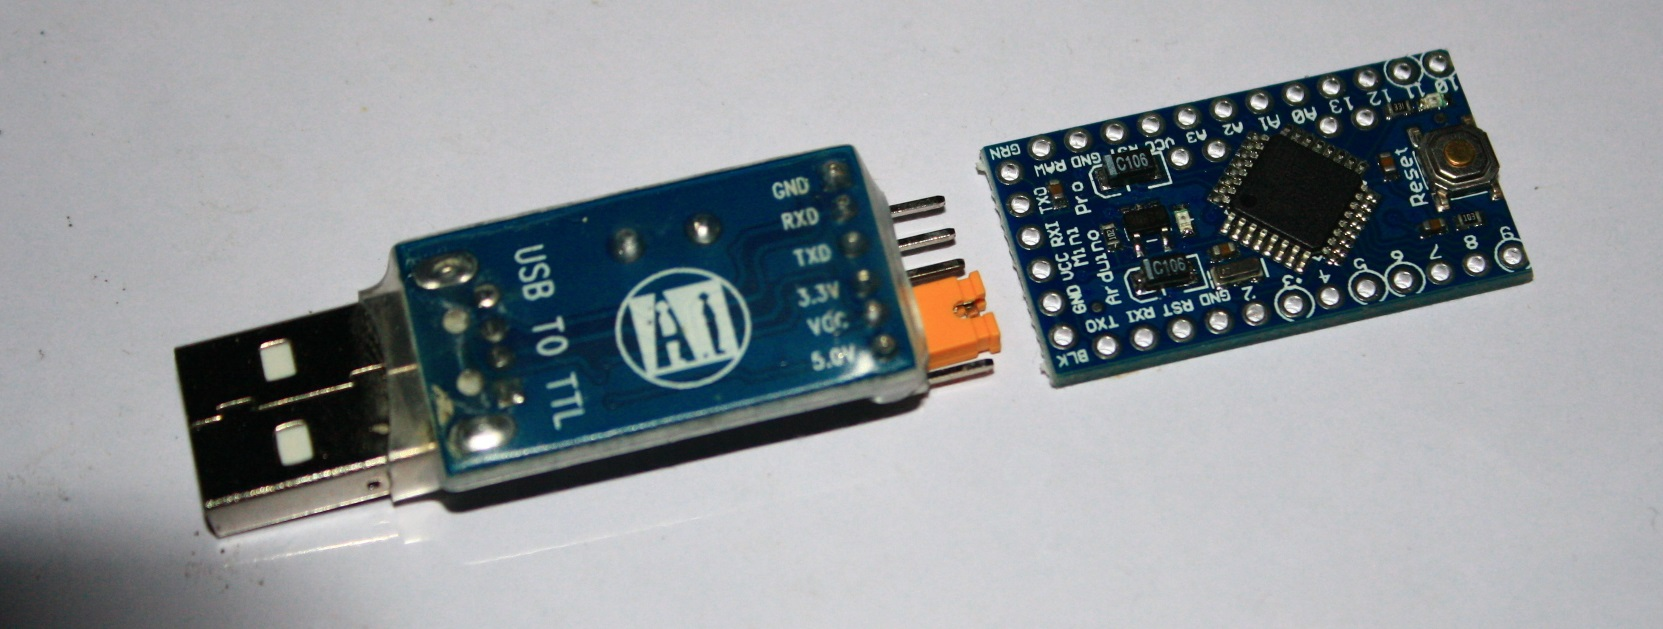 How do I program this Arduino Pro Mini with this CH340G USB